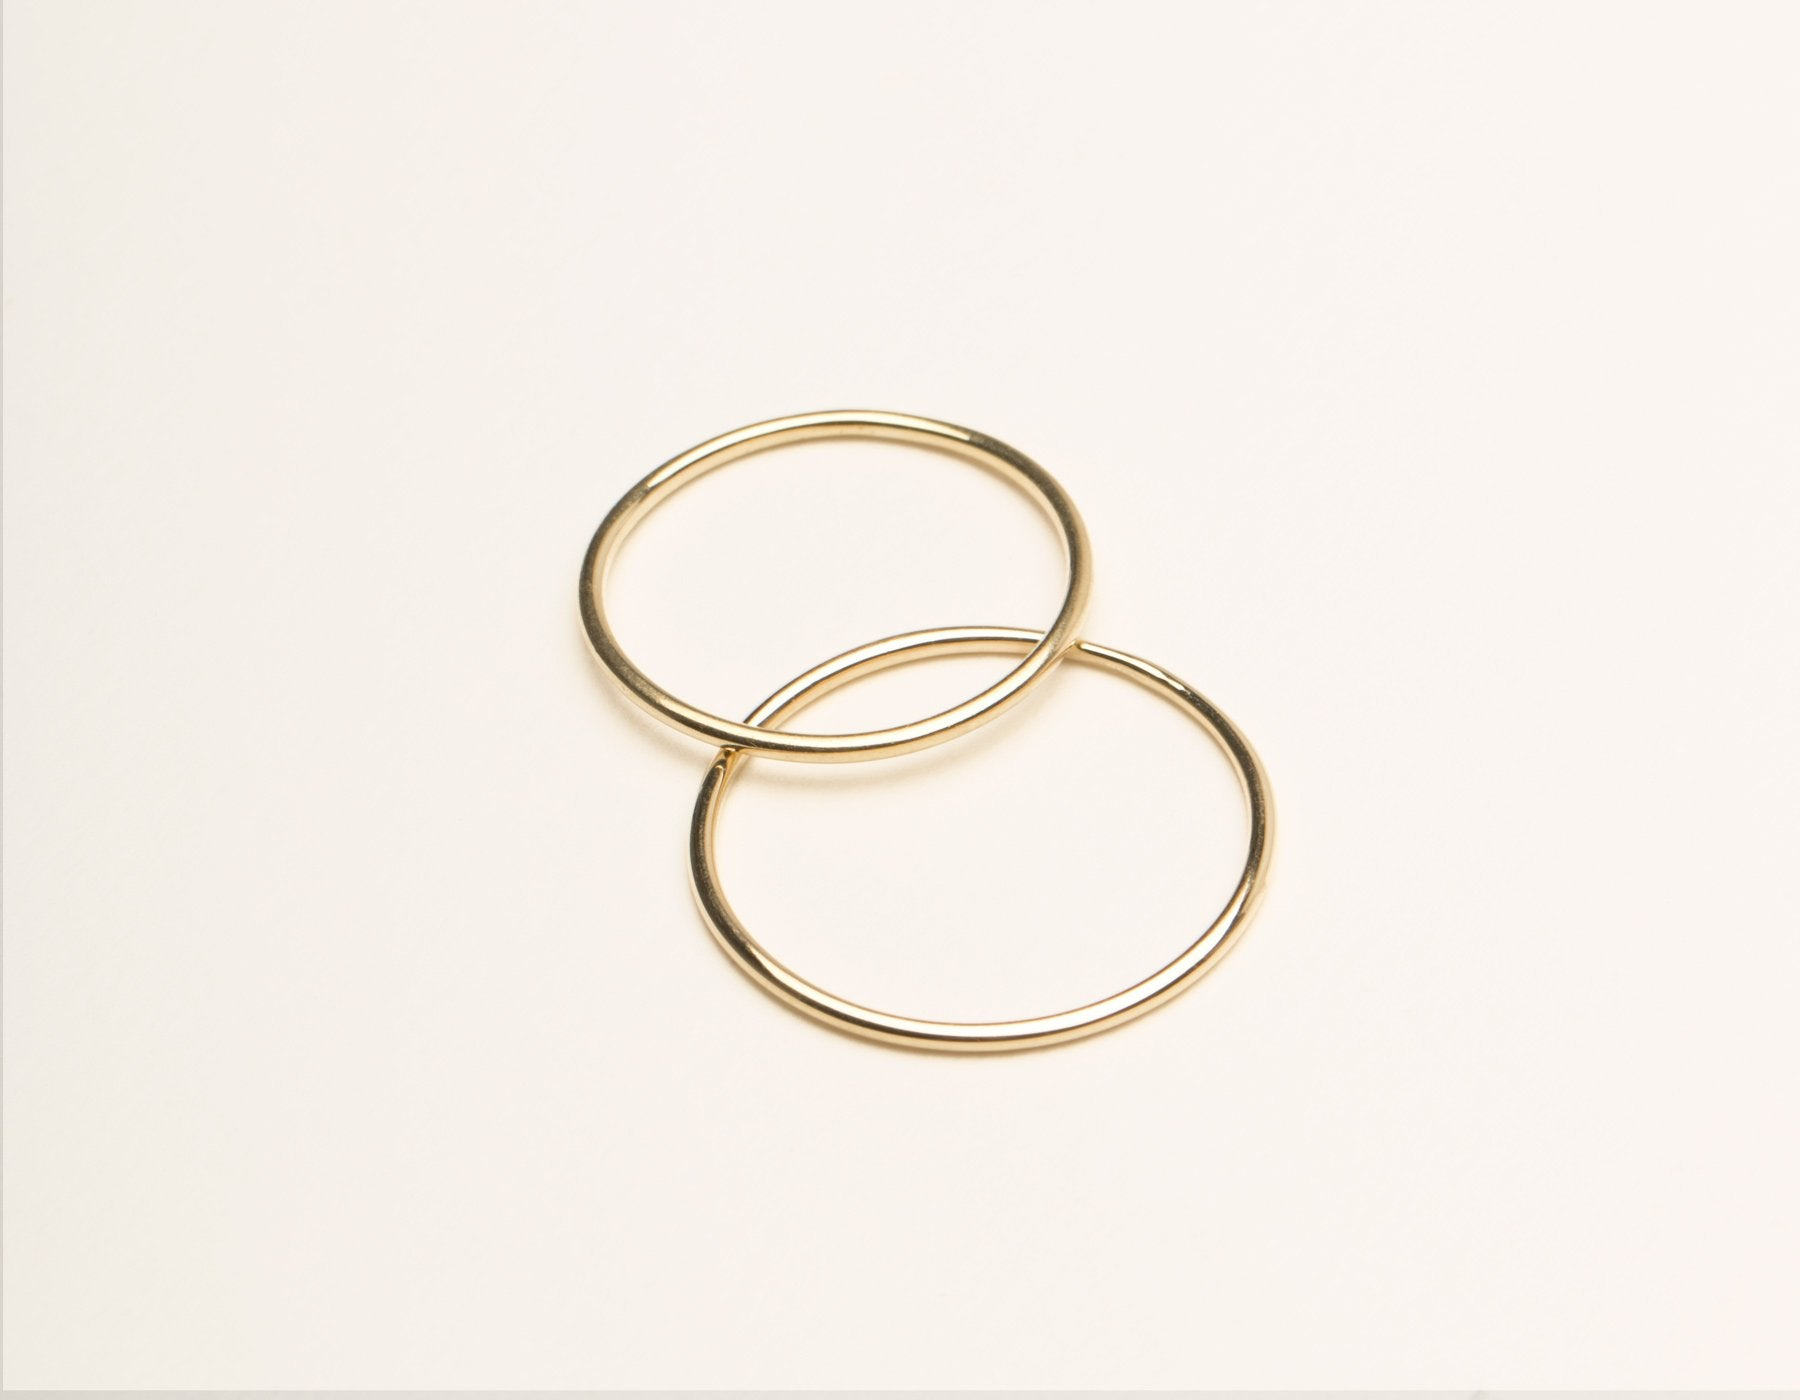 Simple Vrai & Oro 14k Solid Yellow Gold Skinny Stacking Ring